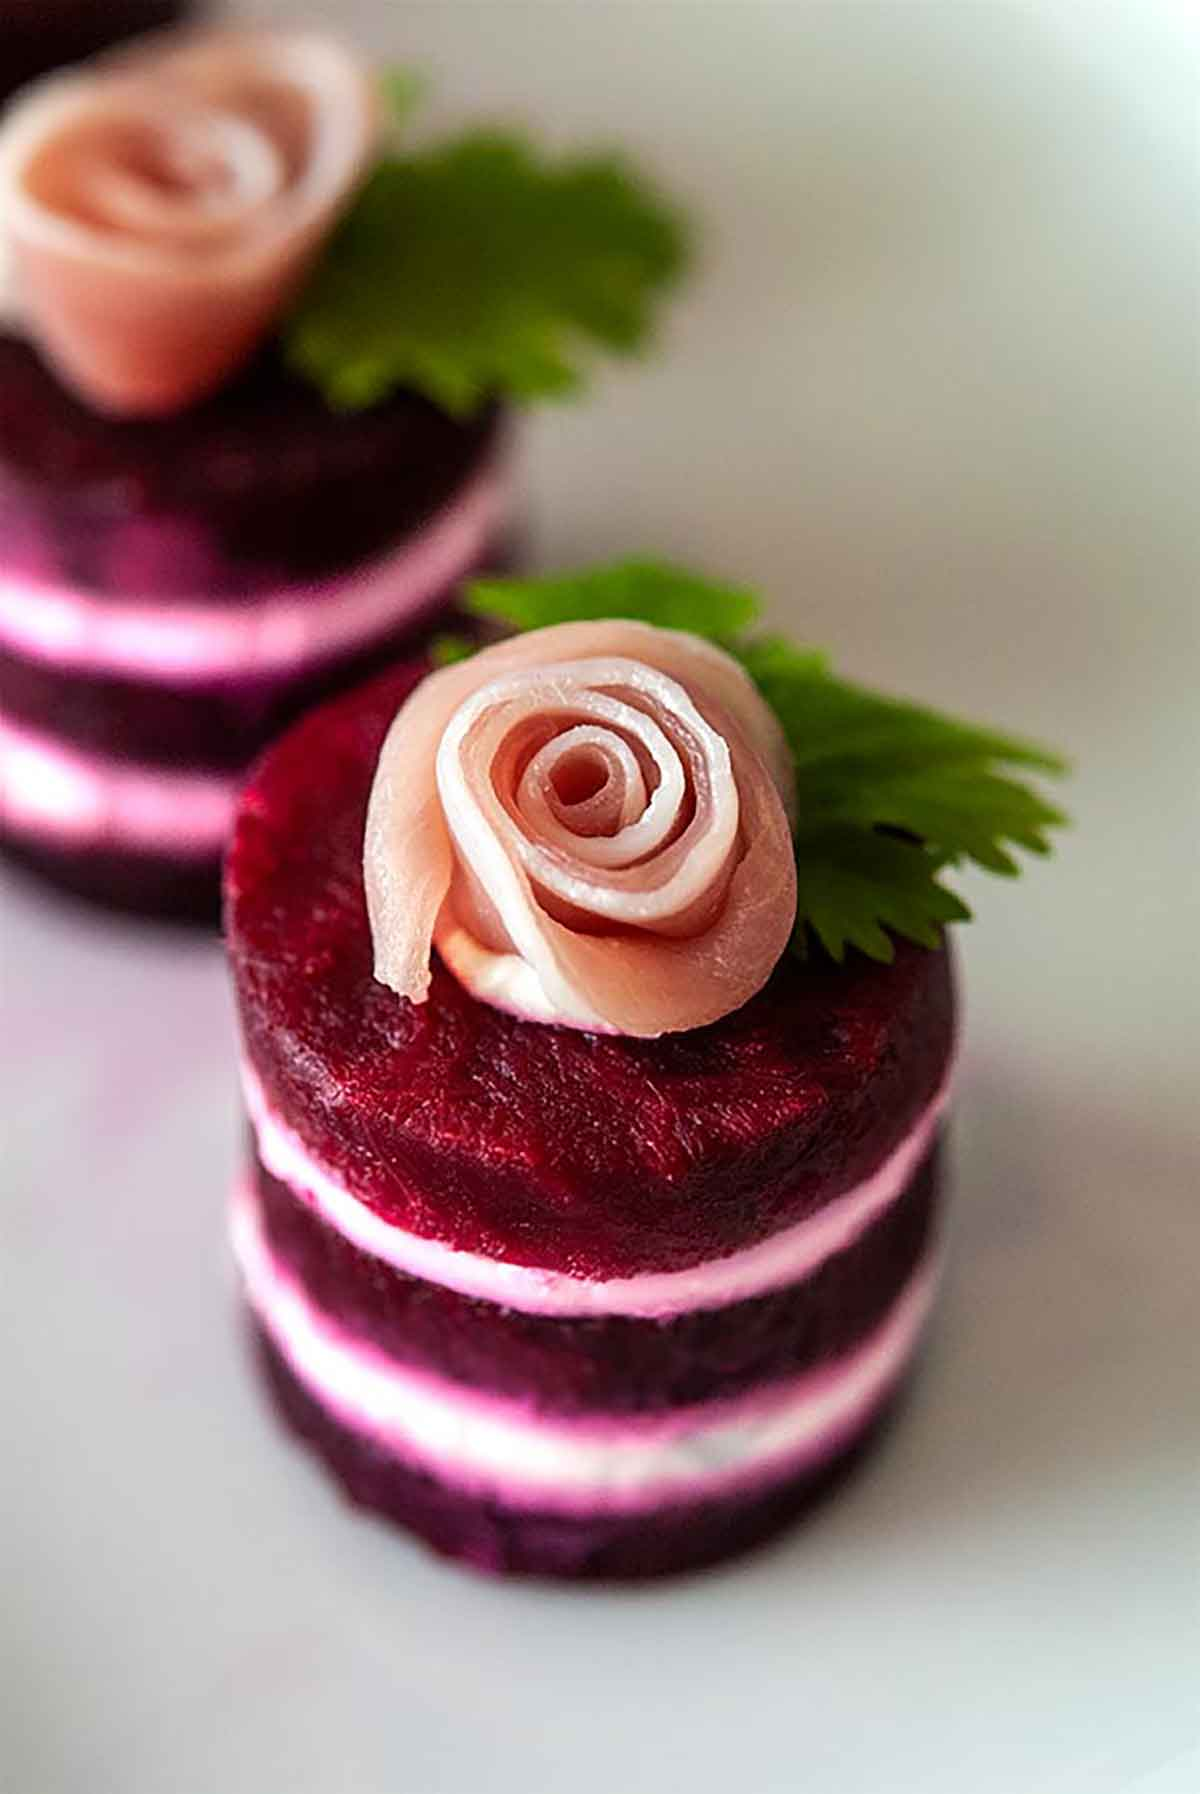 A small beet napoleon, with a prosciutto rose on top, on a white plate.